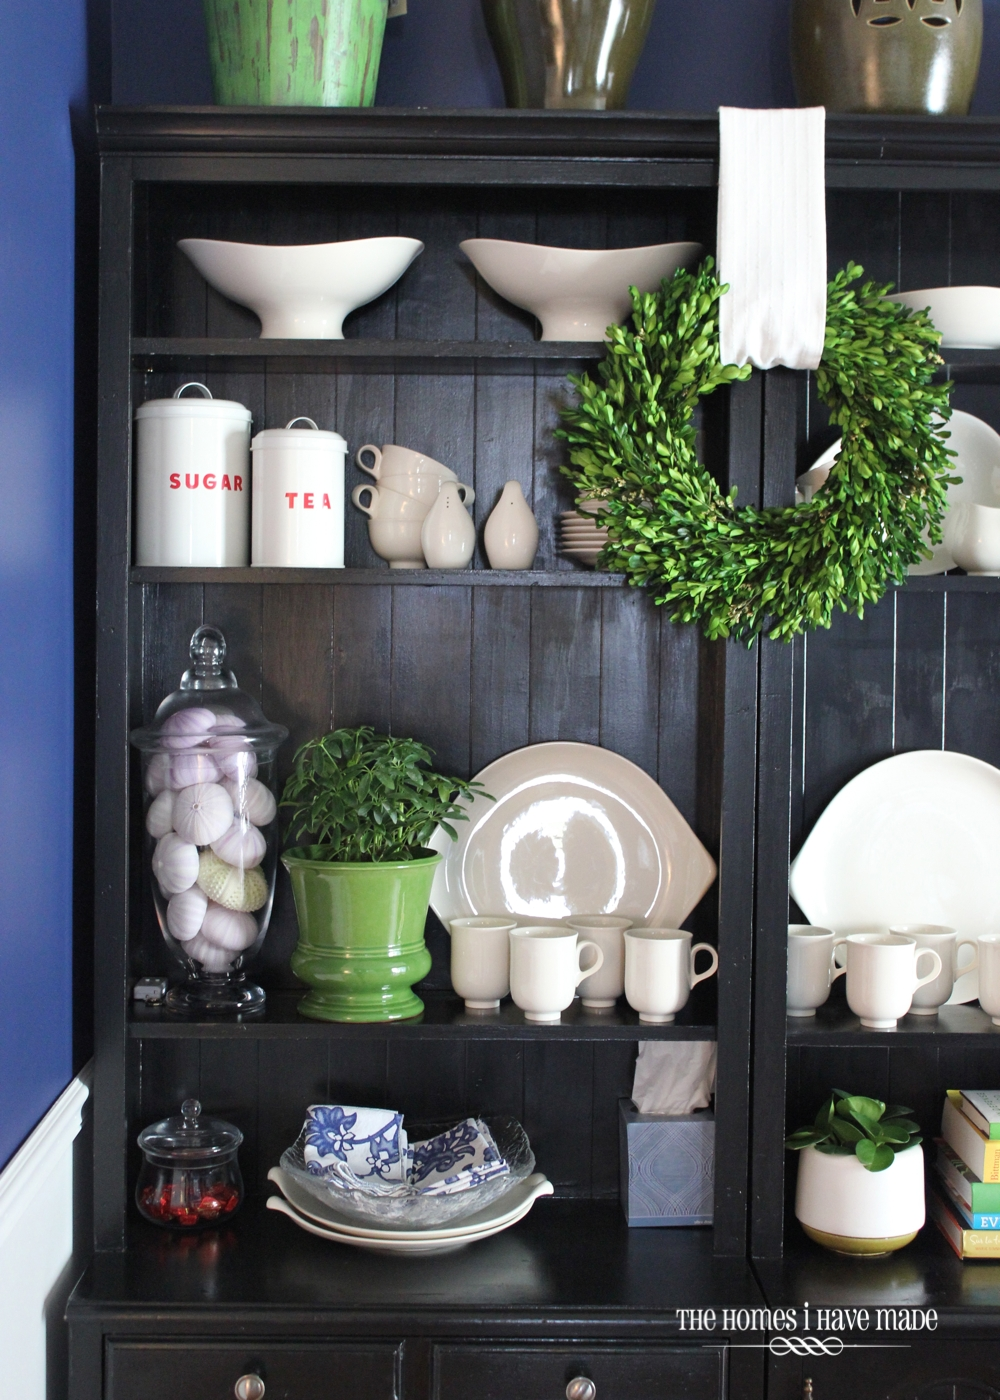 Styling Bookcases as a Dining Hutch | The Homes I Have Made